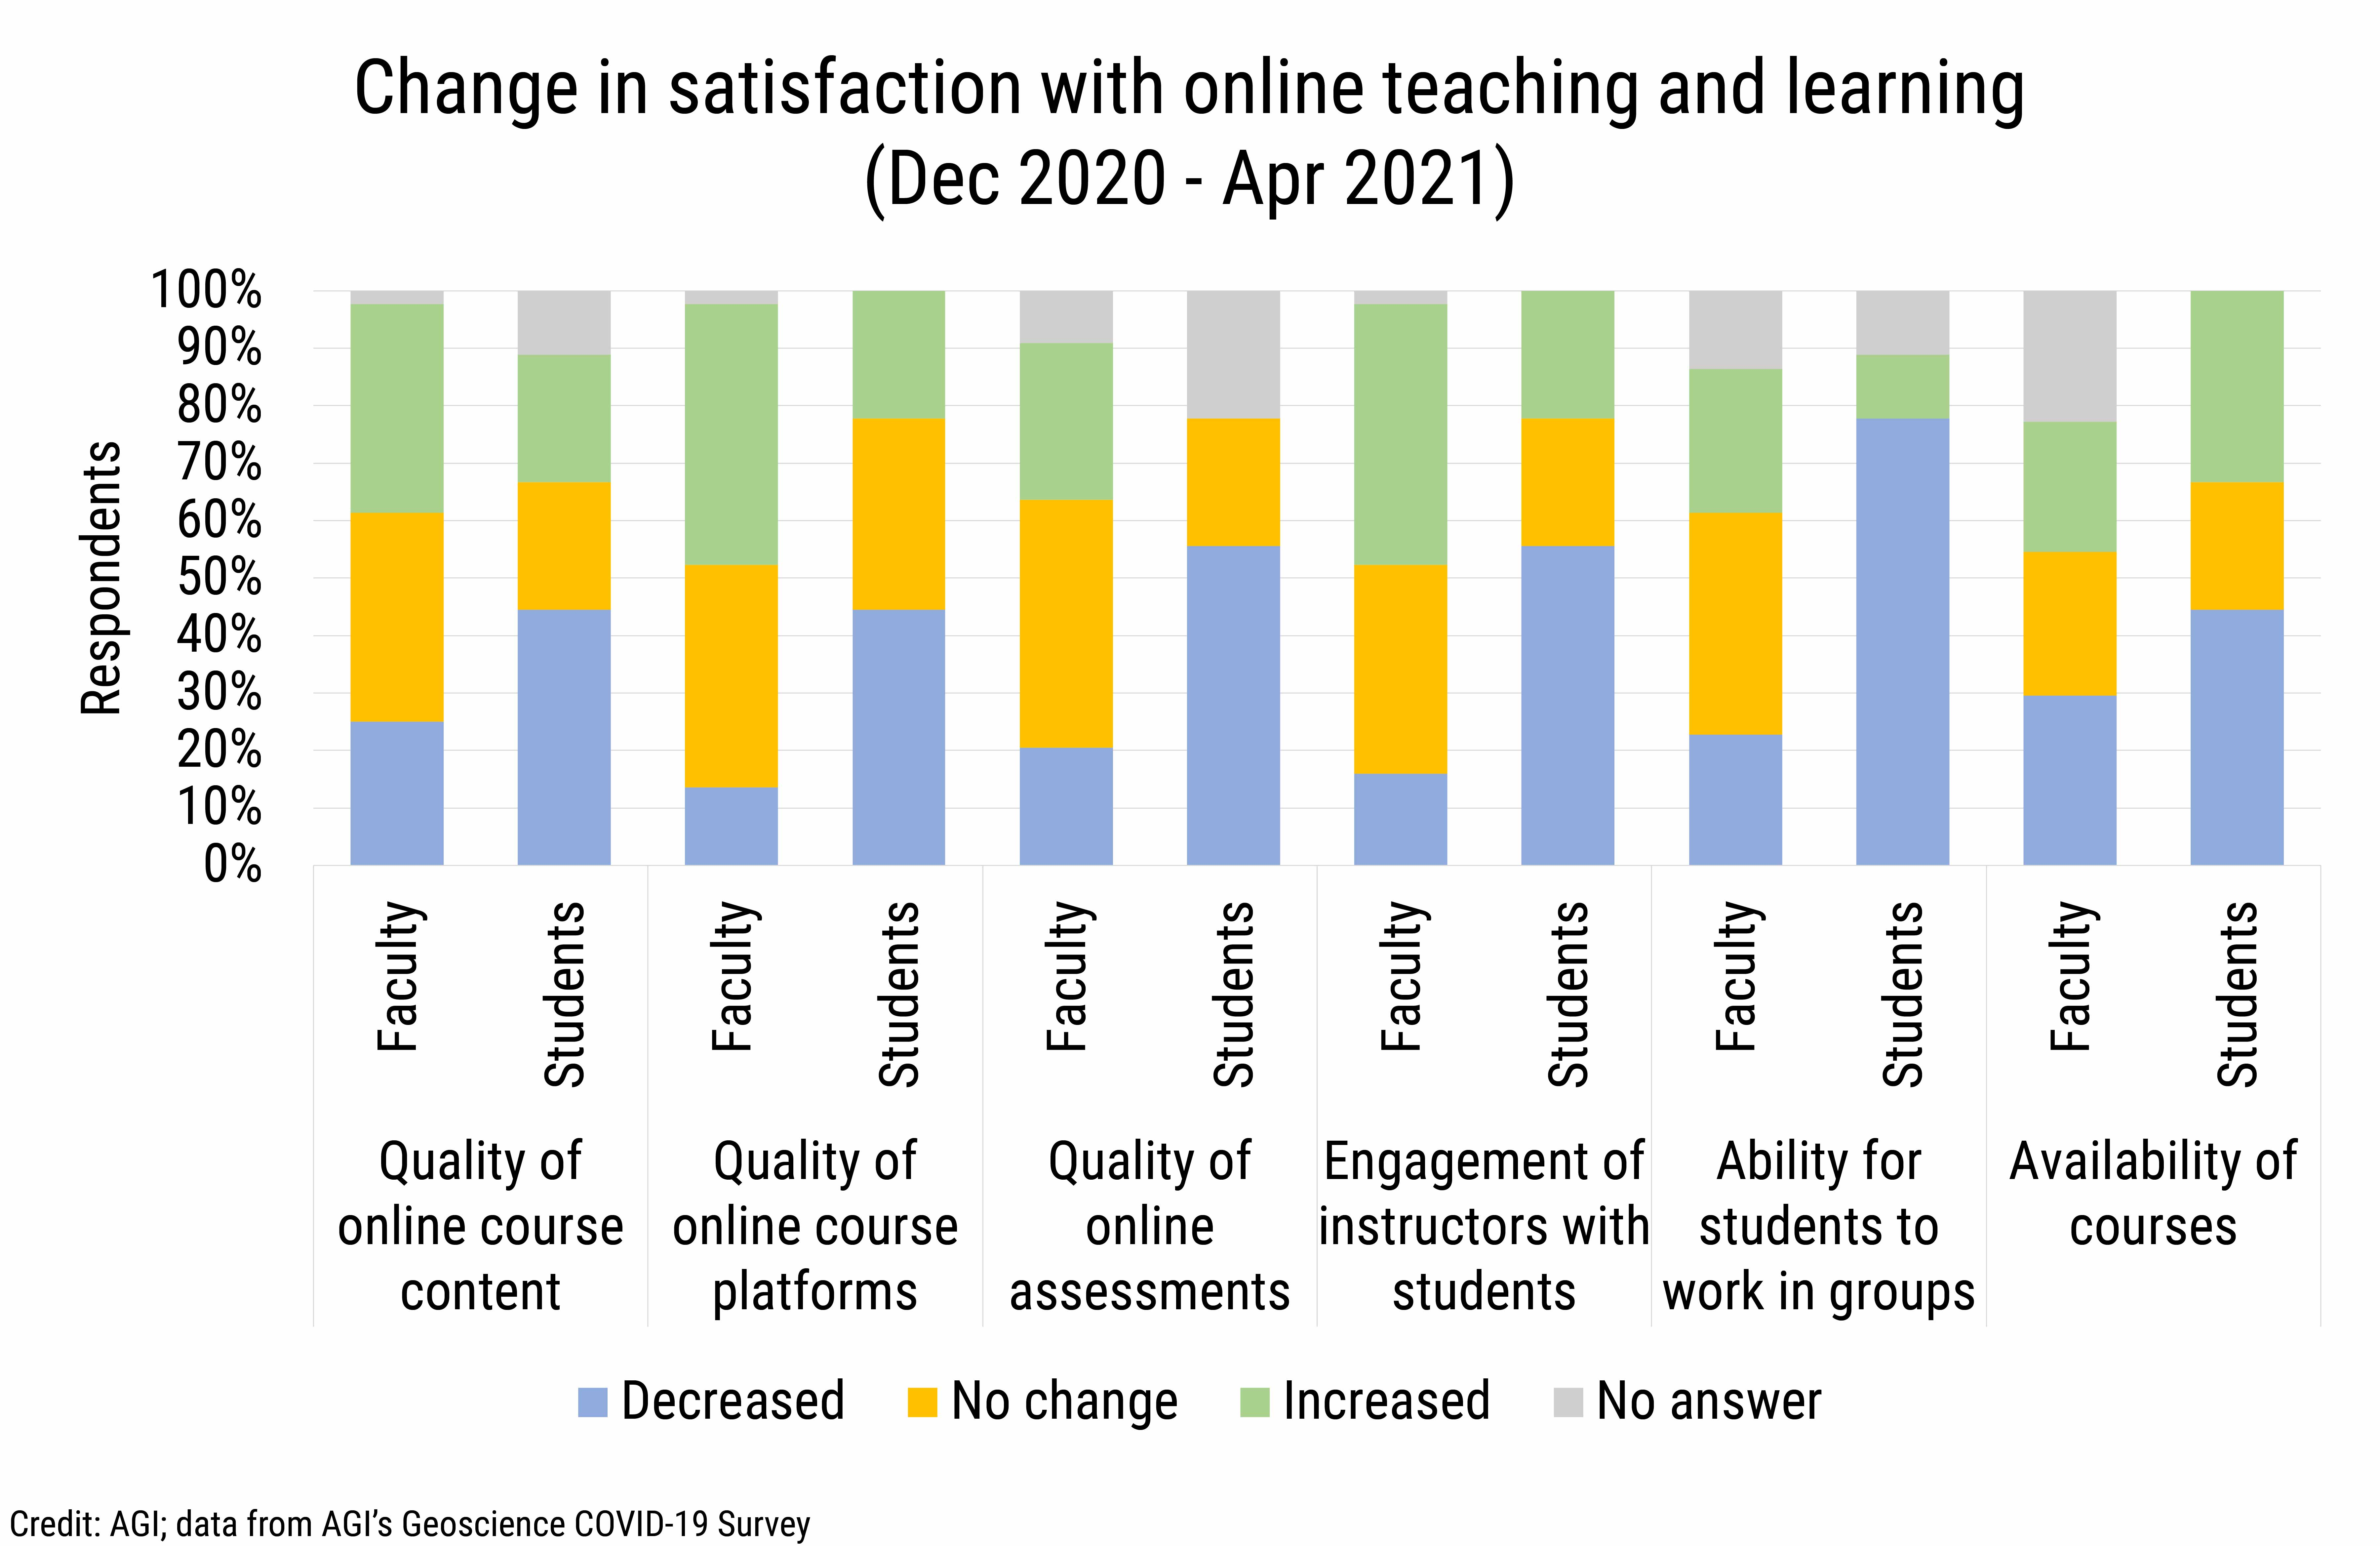 DB_2021-016 chart 07: Change in satisfaction with online teaching and learning (Dec 2020 - Apr 2021) (Credit: AGI; data from AGI's Geoscience COVID-19 Survey)